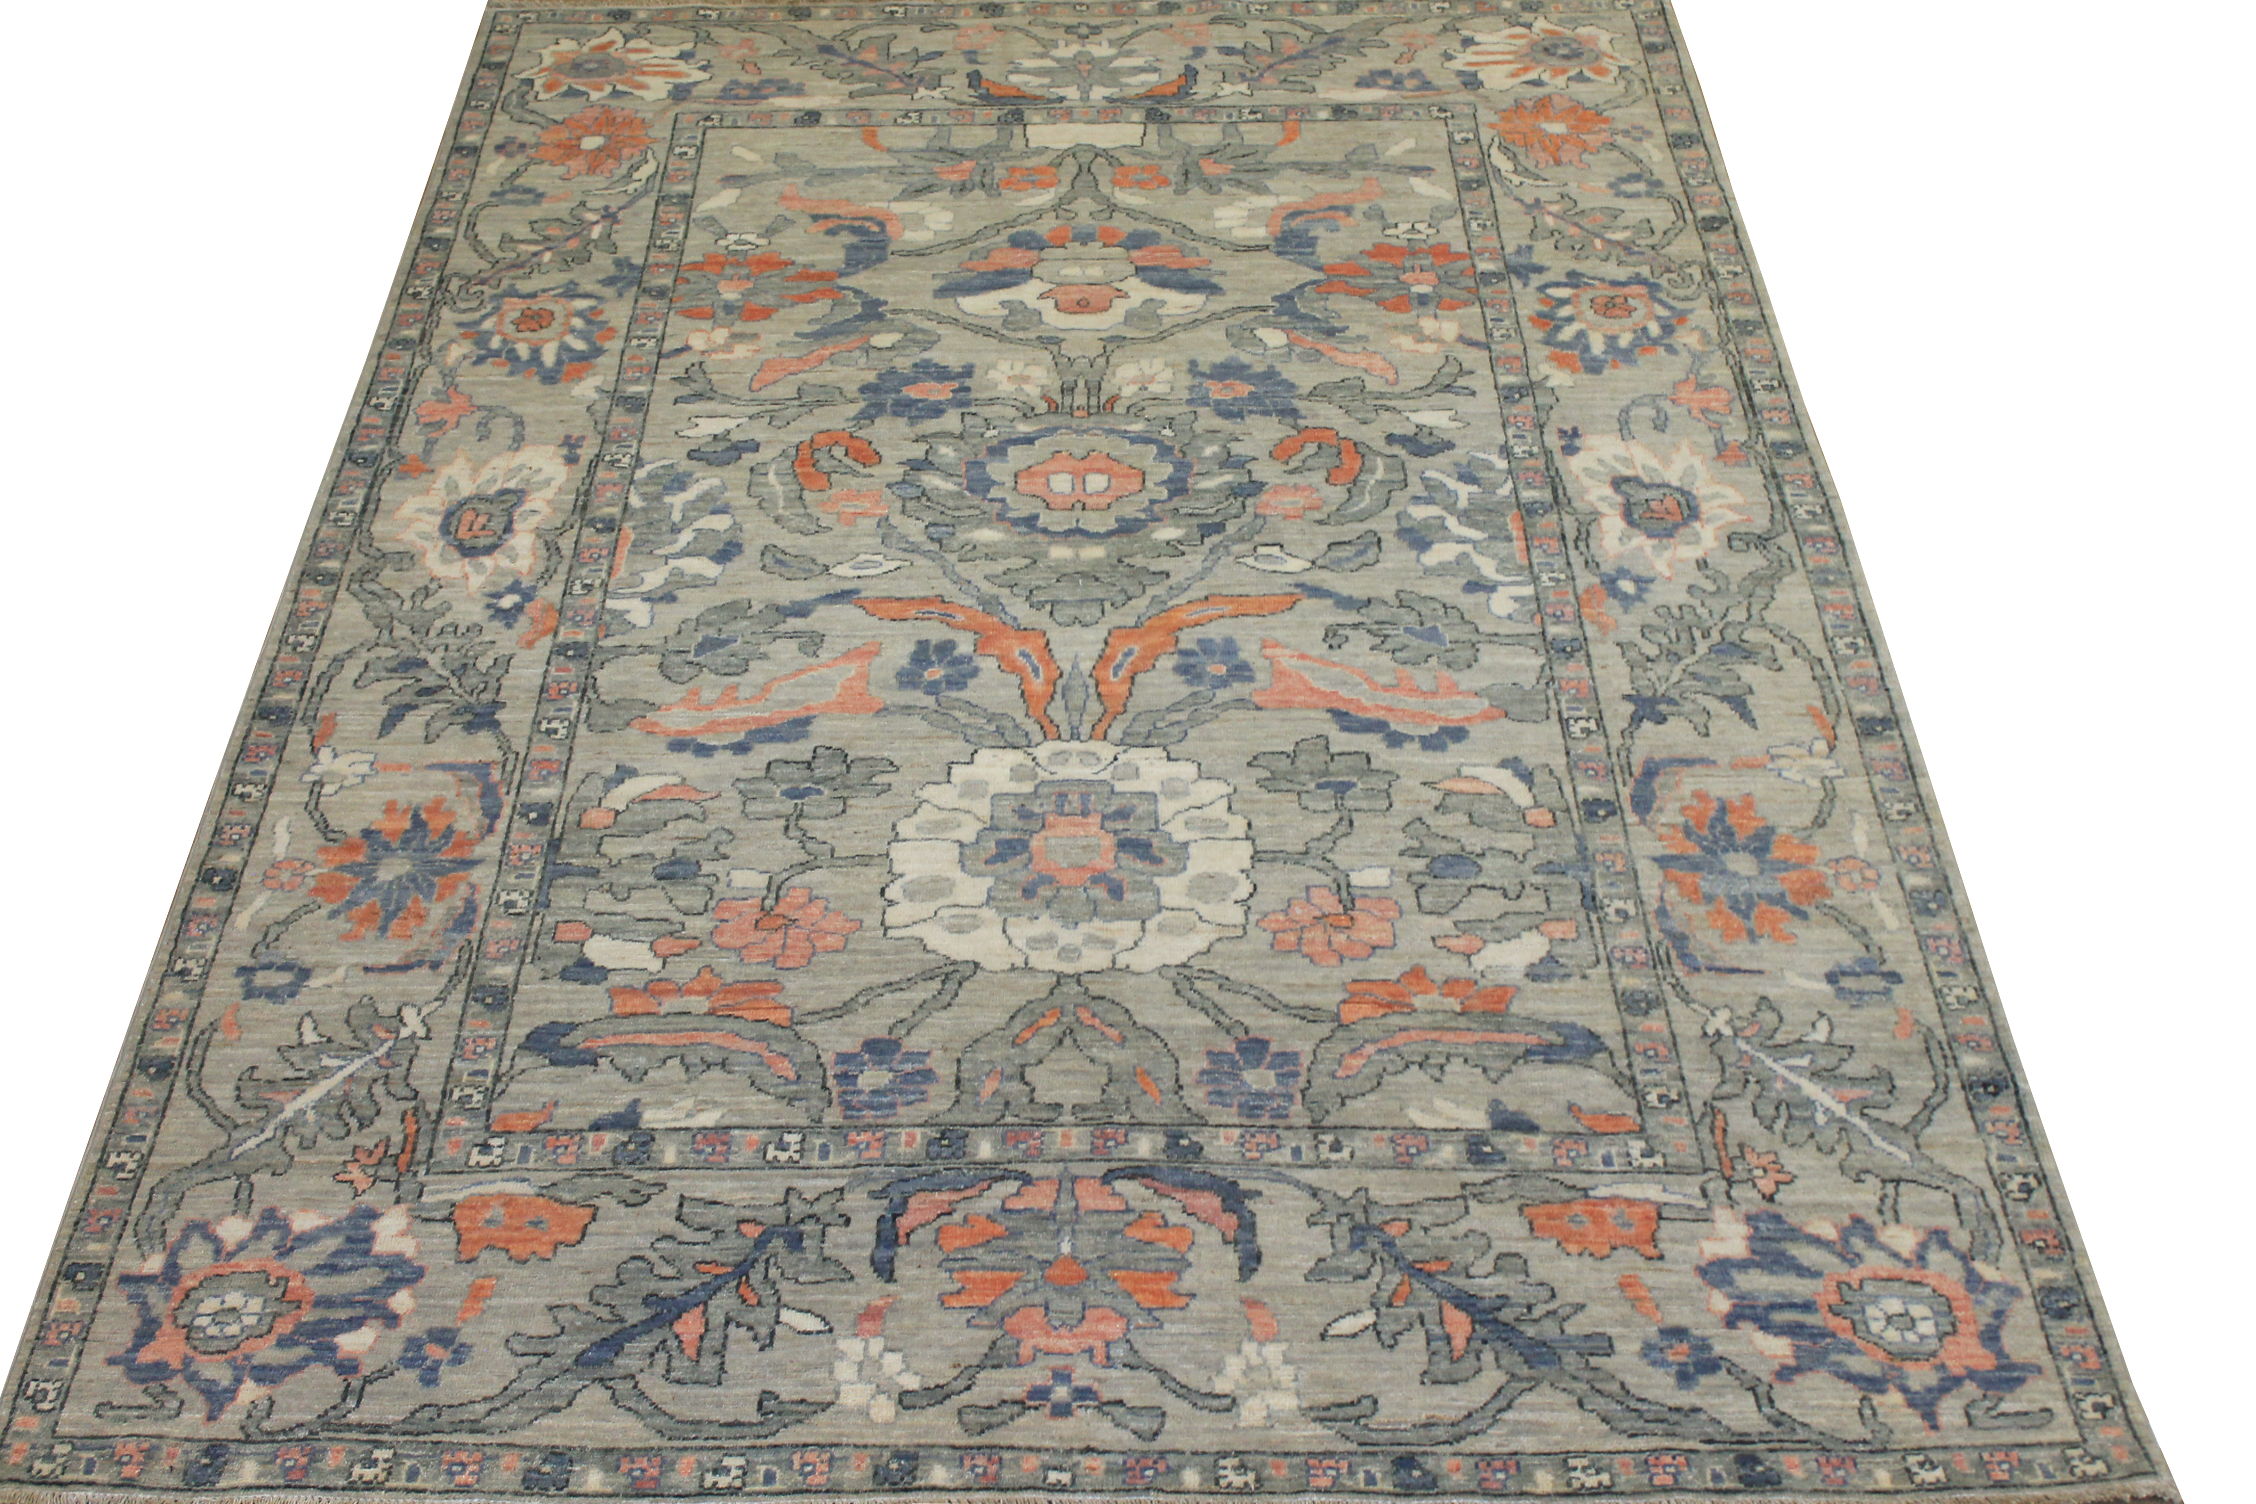 6x9 Oushak Hand Knotted Wool Area Rug - MR024375